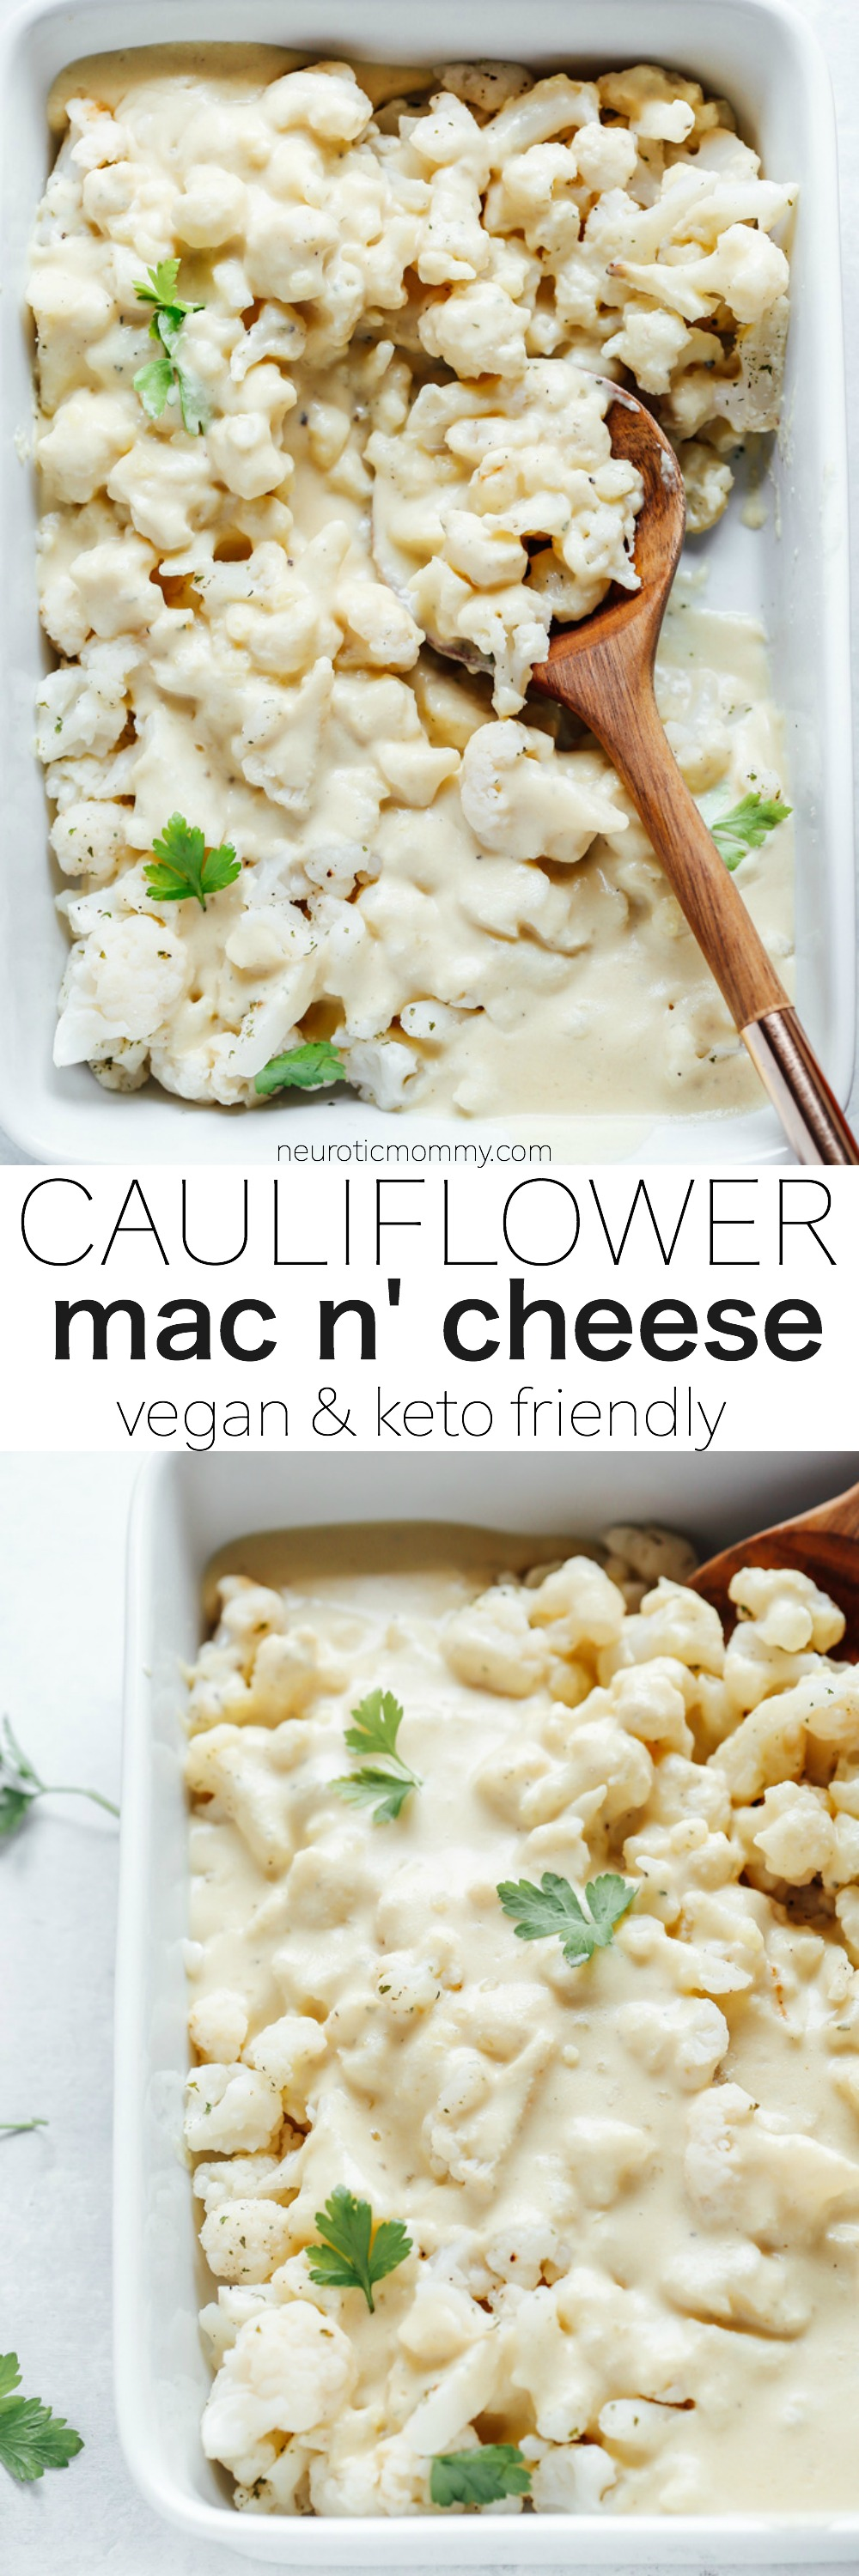 Vegan Cauliflower Mac n' Cheese - This is legit the best side dish you can make. It pairs great with anything. It's super creamy, delicious, savory and KETO Friendly! NeuroticMommy.com #vegan #keto #lowcarb